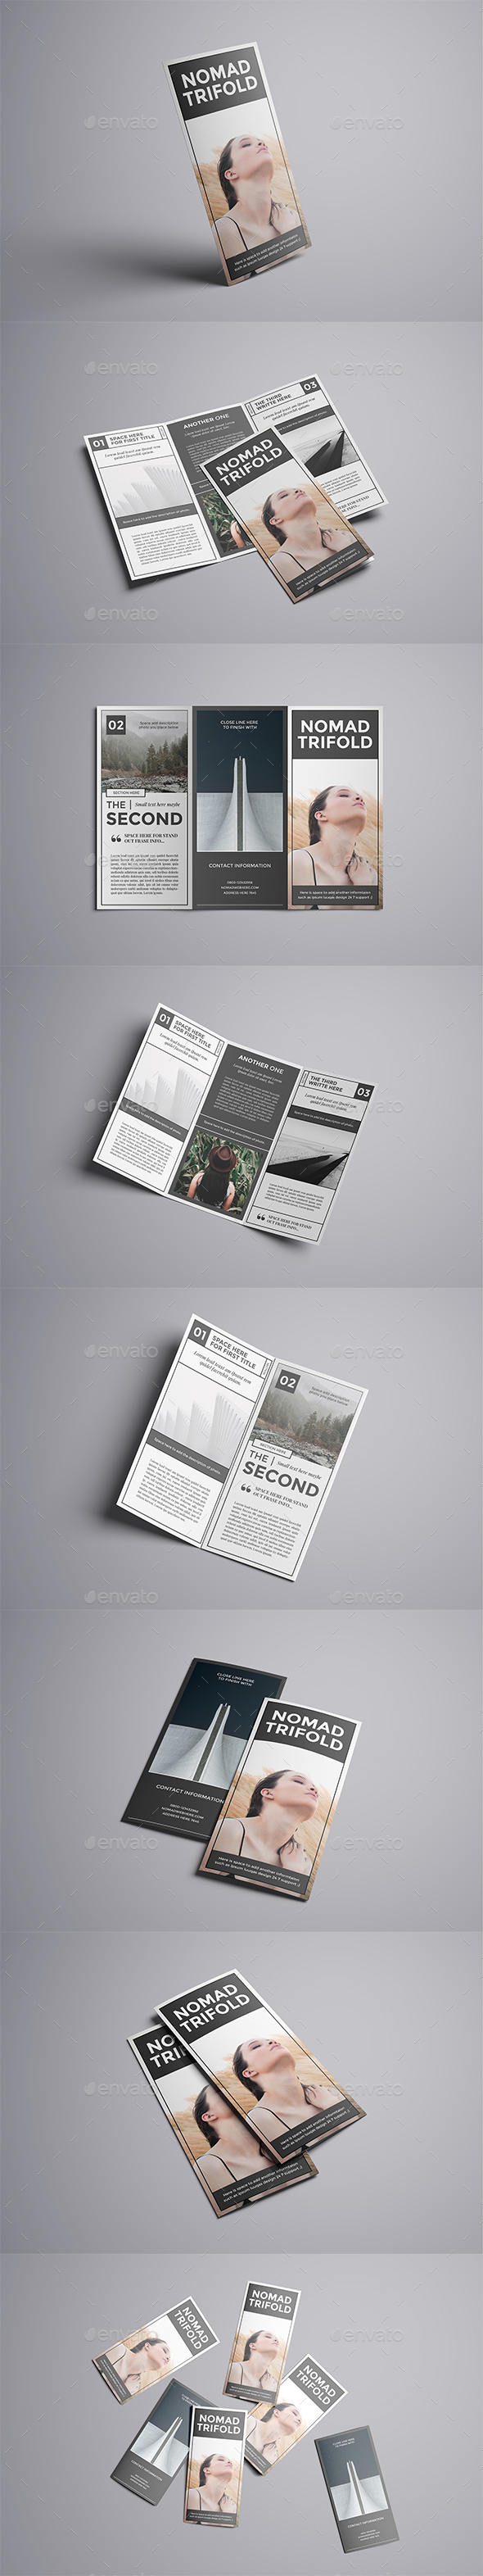 GraphicRiver Nomad A4 Trifold Brochure 20682068